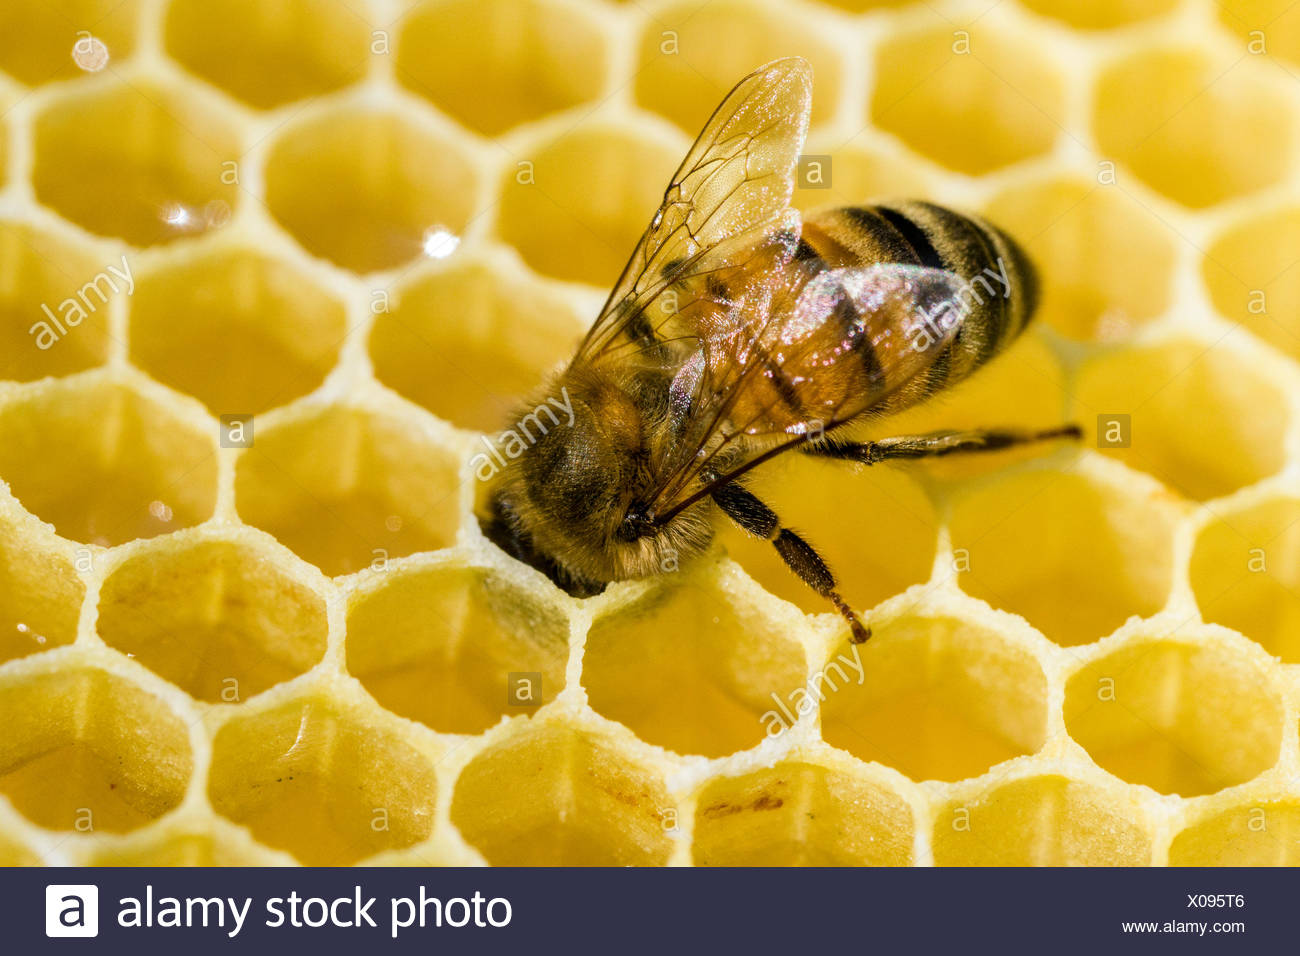 A Carniolan honey bee (Apis mellifera carnica) is acting on a honeycomb, Saxony, Germany - Stock Image